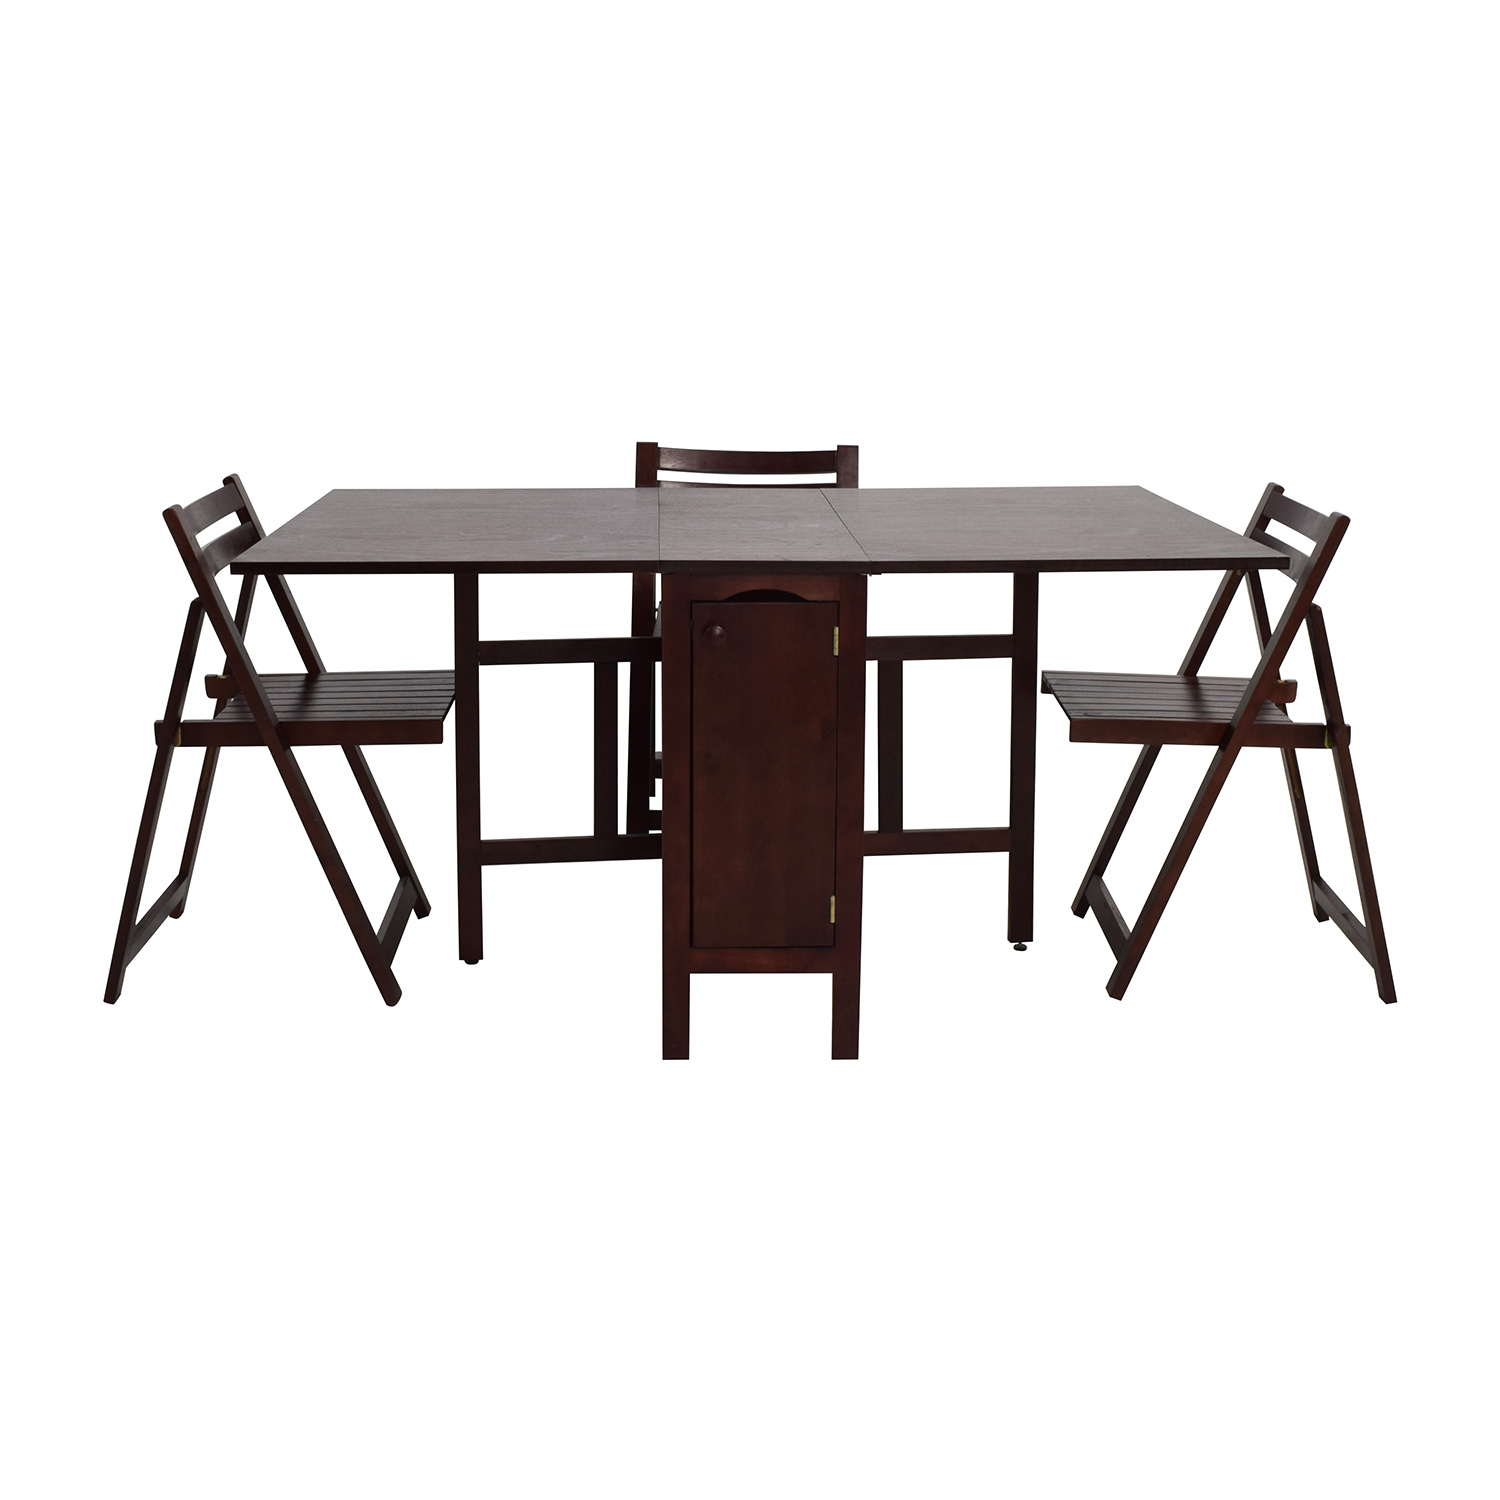 66% OFF - Foldable Kitchen Table with Folding Chairs / Tables